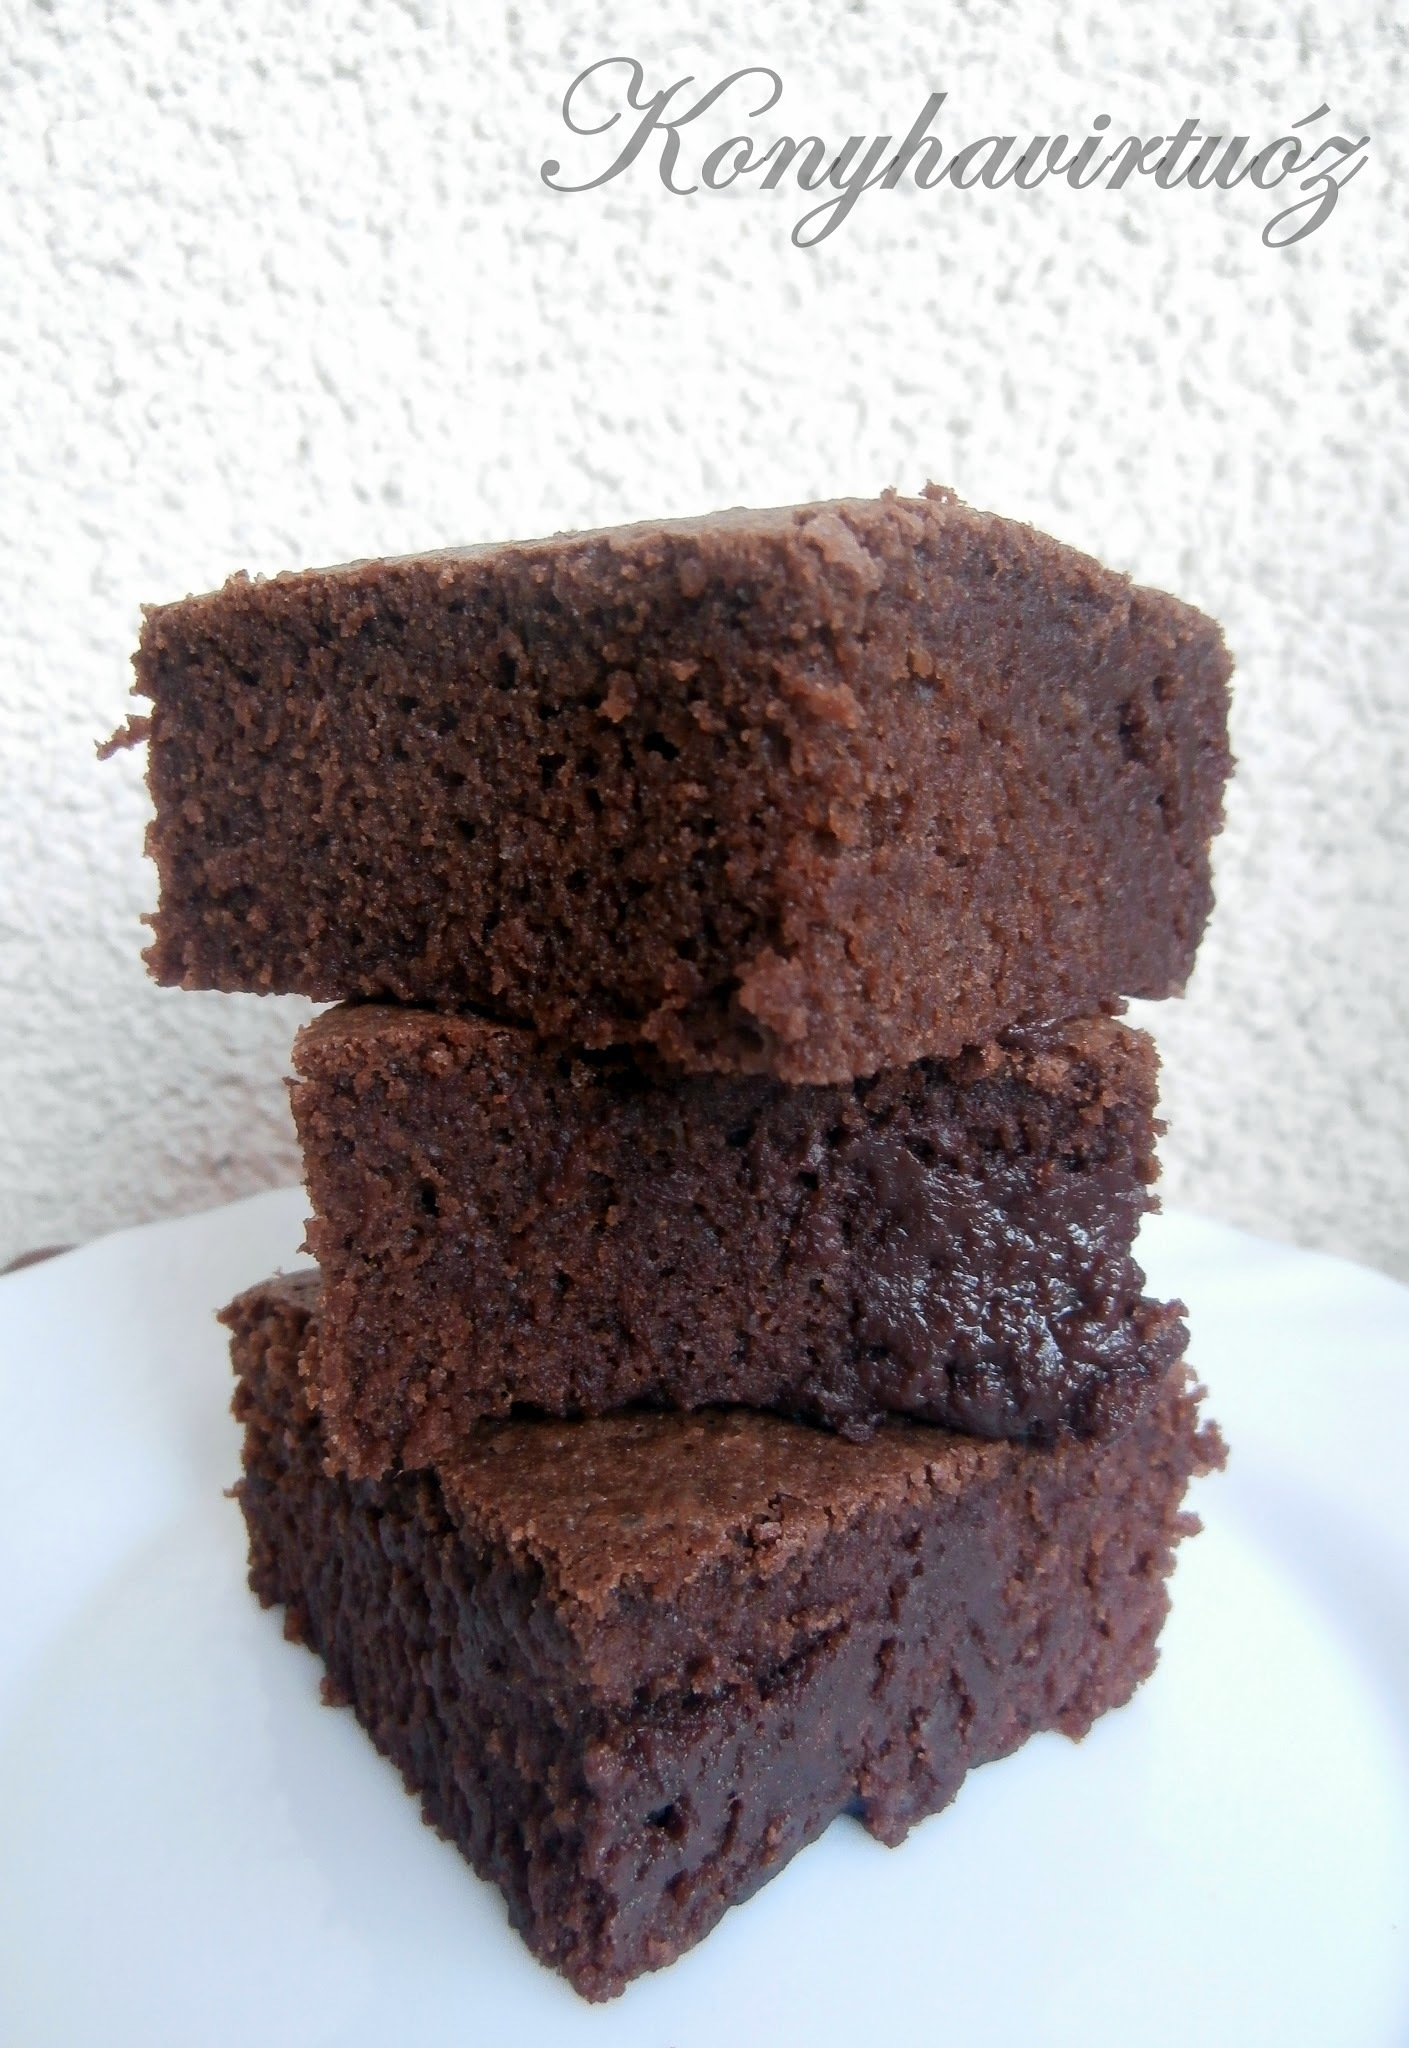 Barna sörös brownie